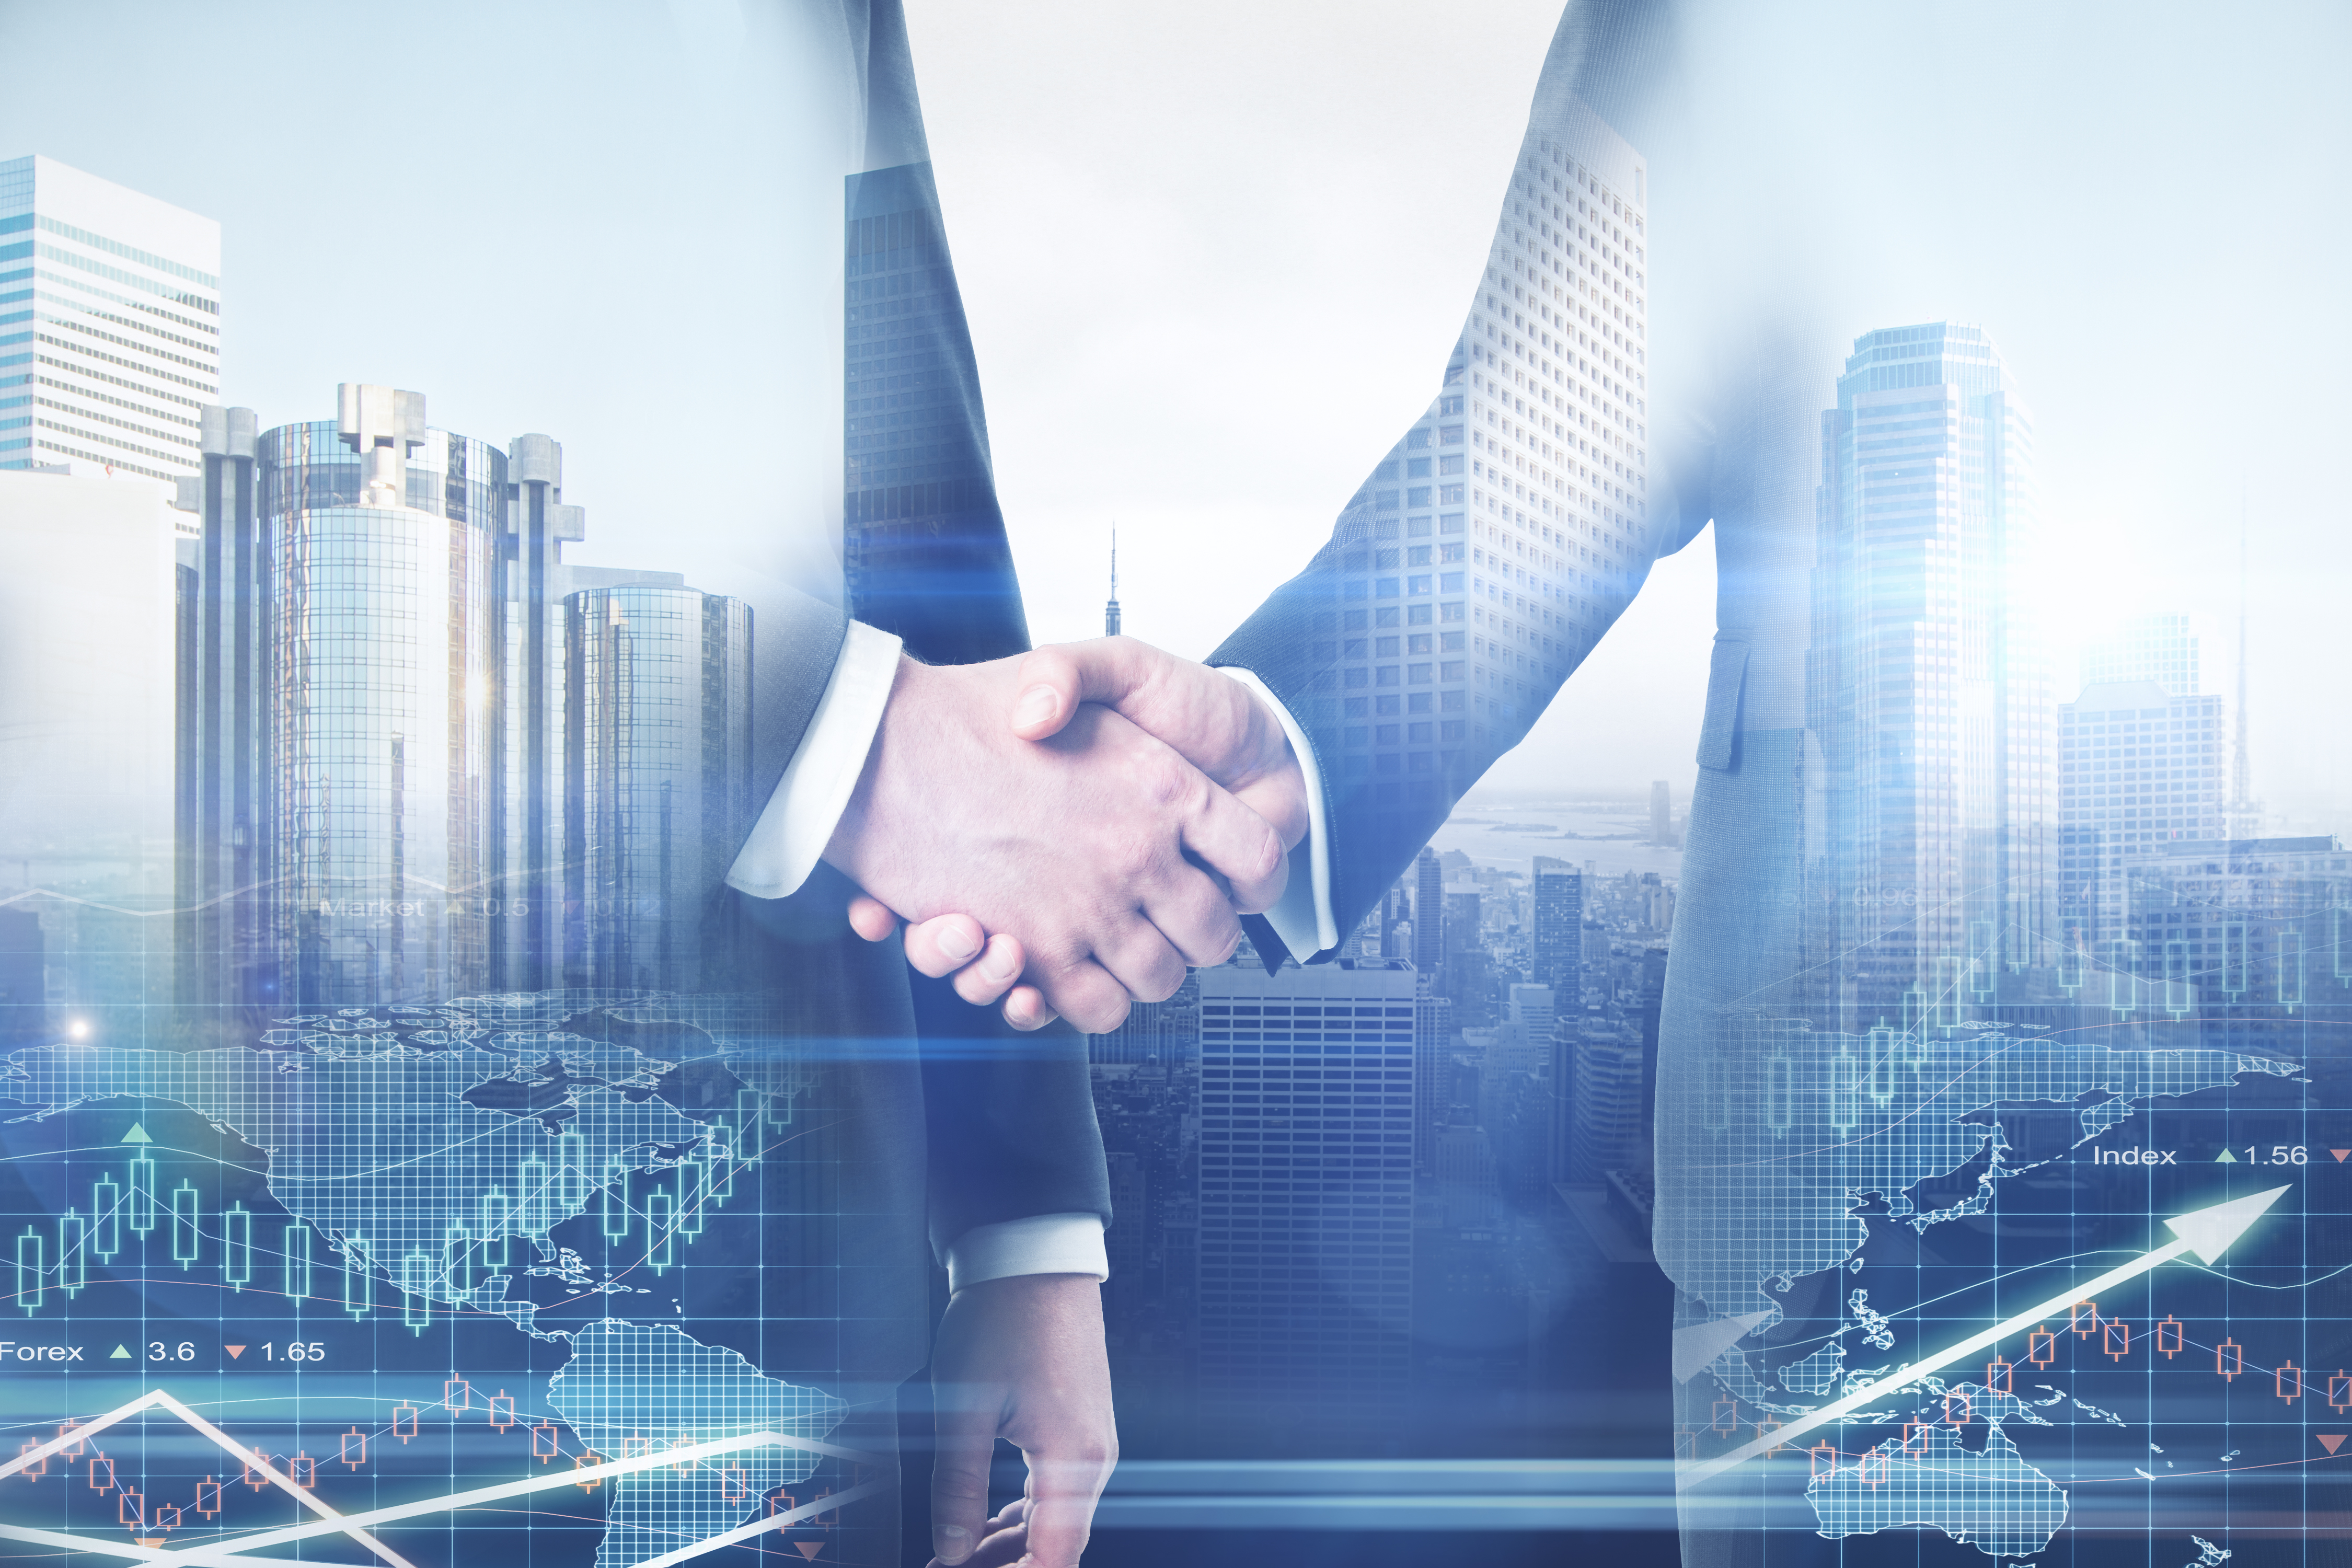 Mergers and acquisitions activity is expected to be strong 2019.